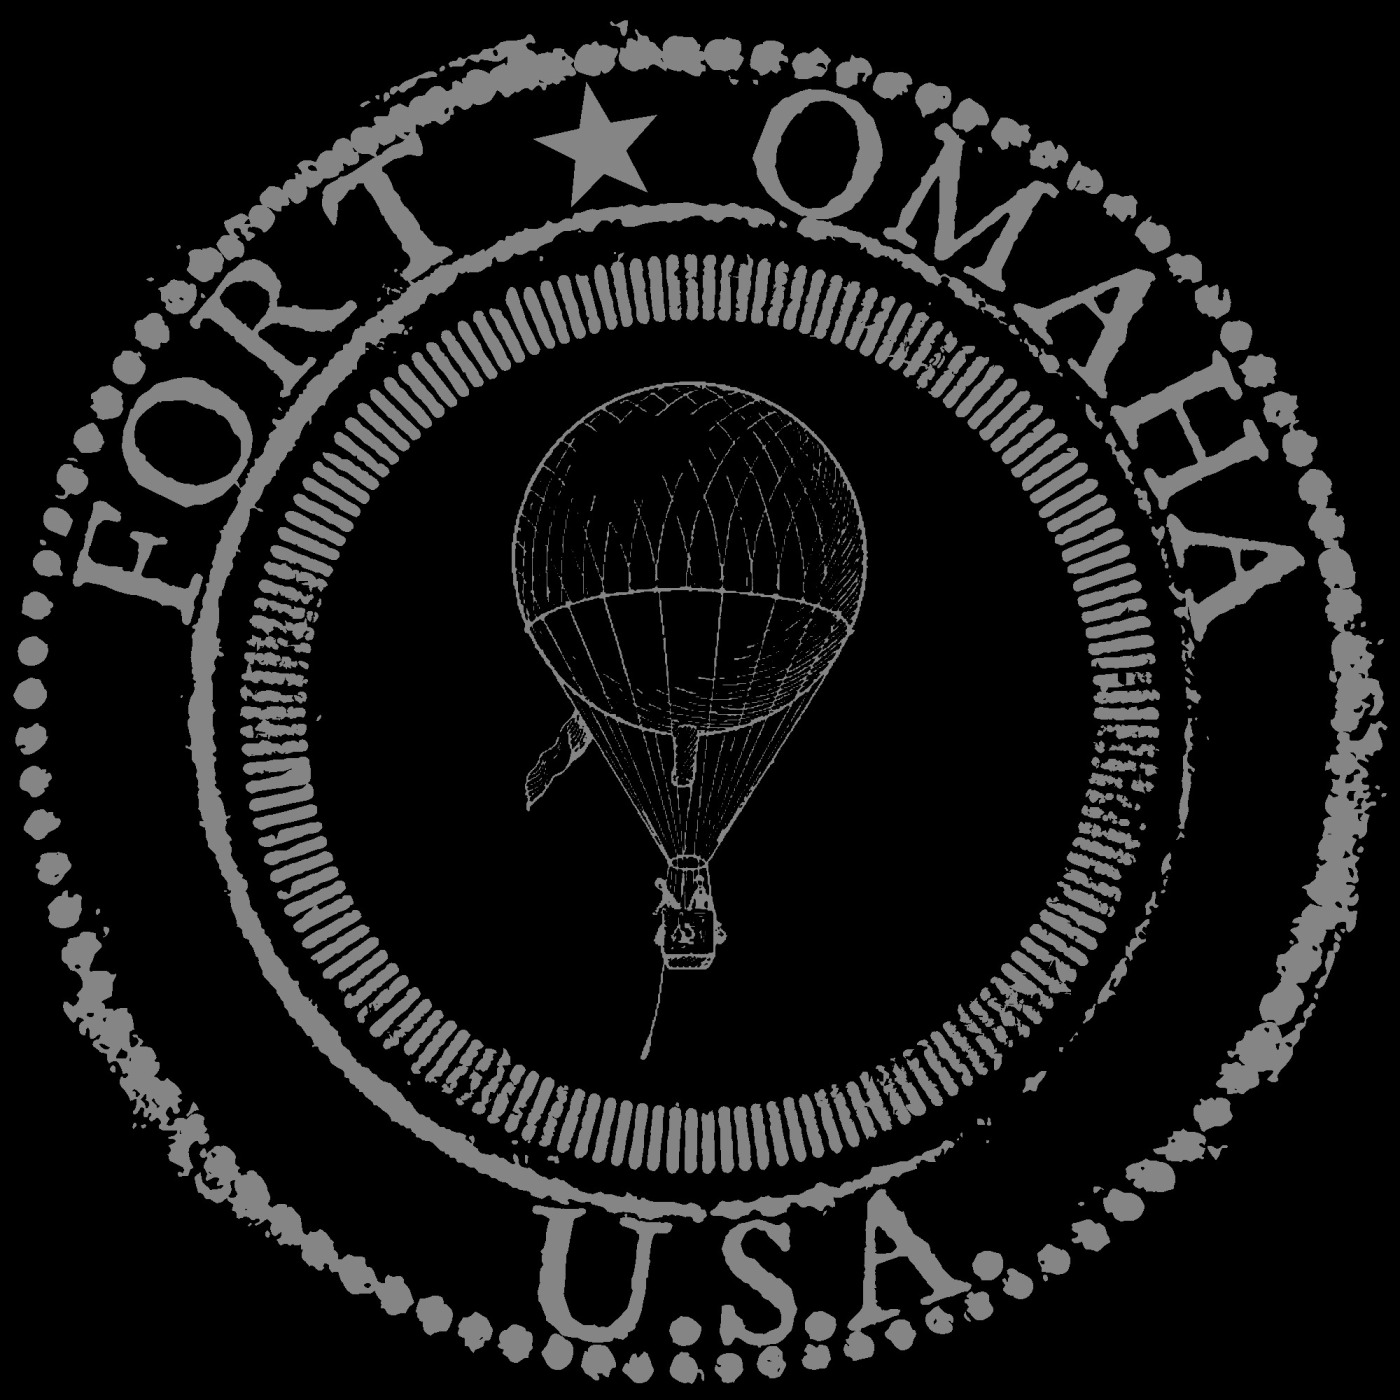 Fort Omaha, USA logo designed by Adam Fletcher Sasse